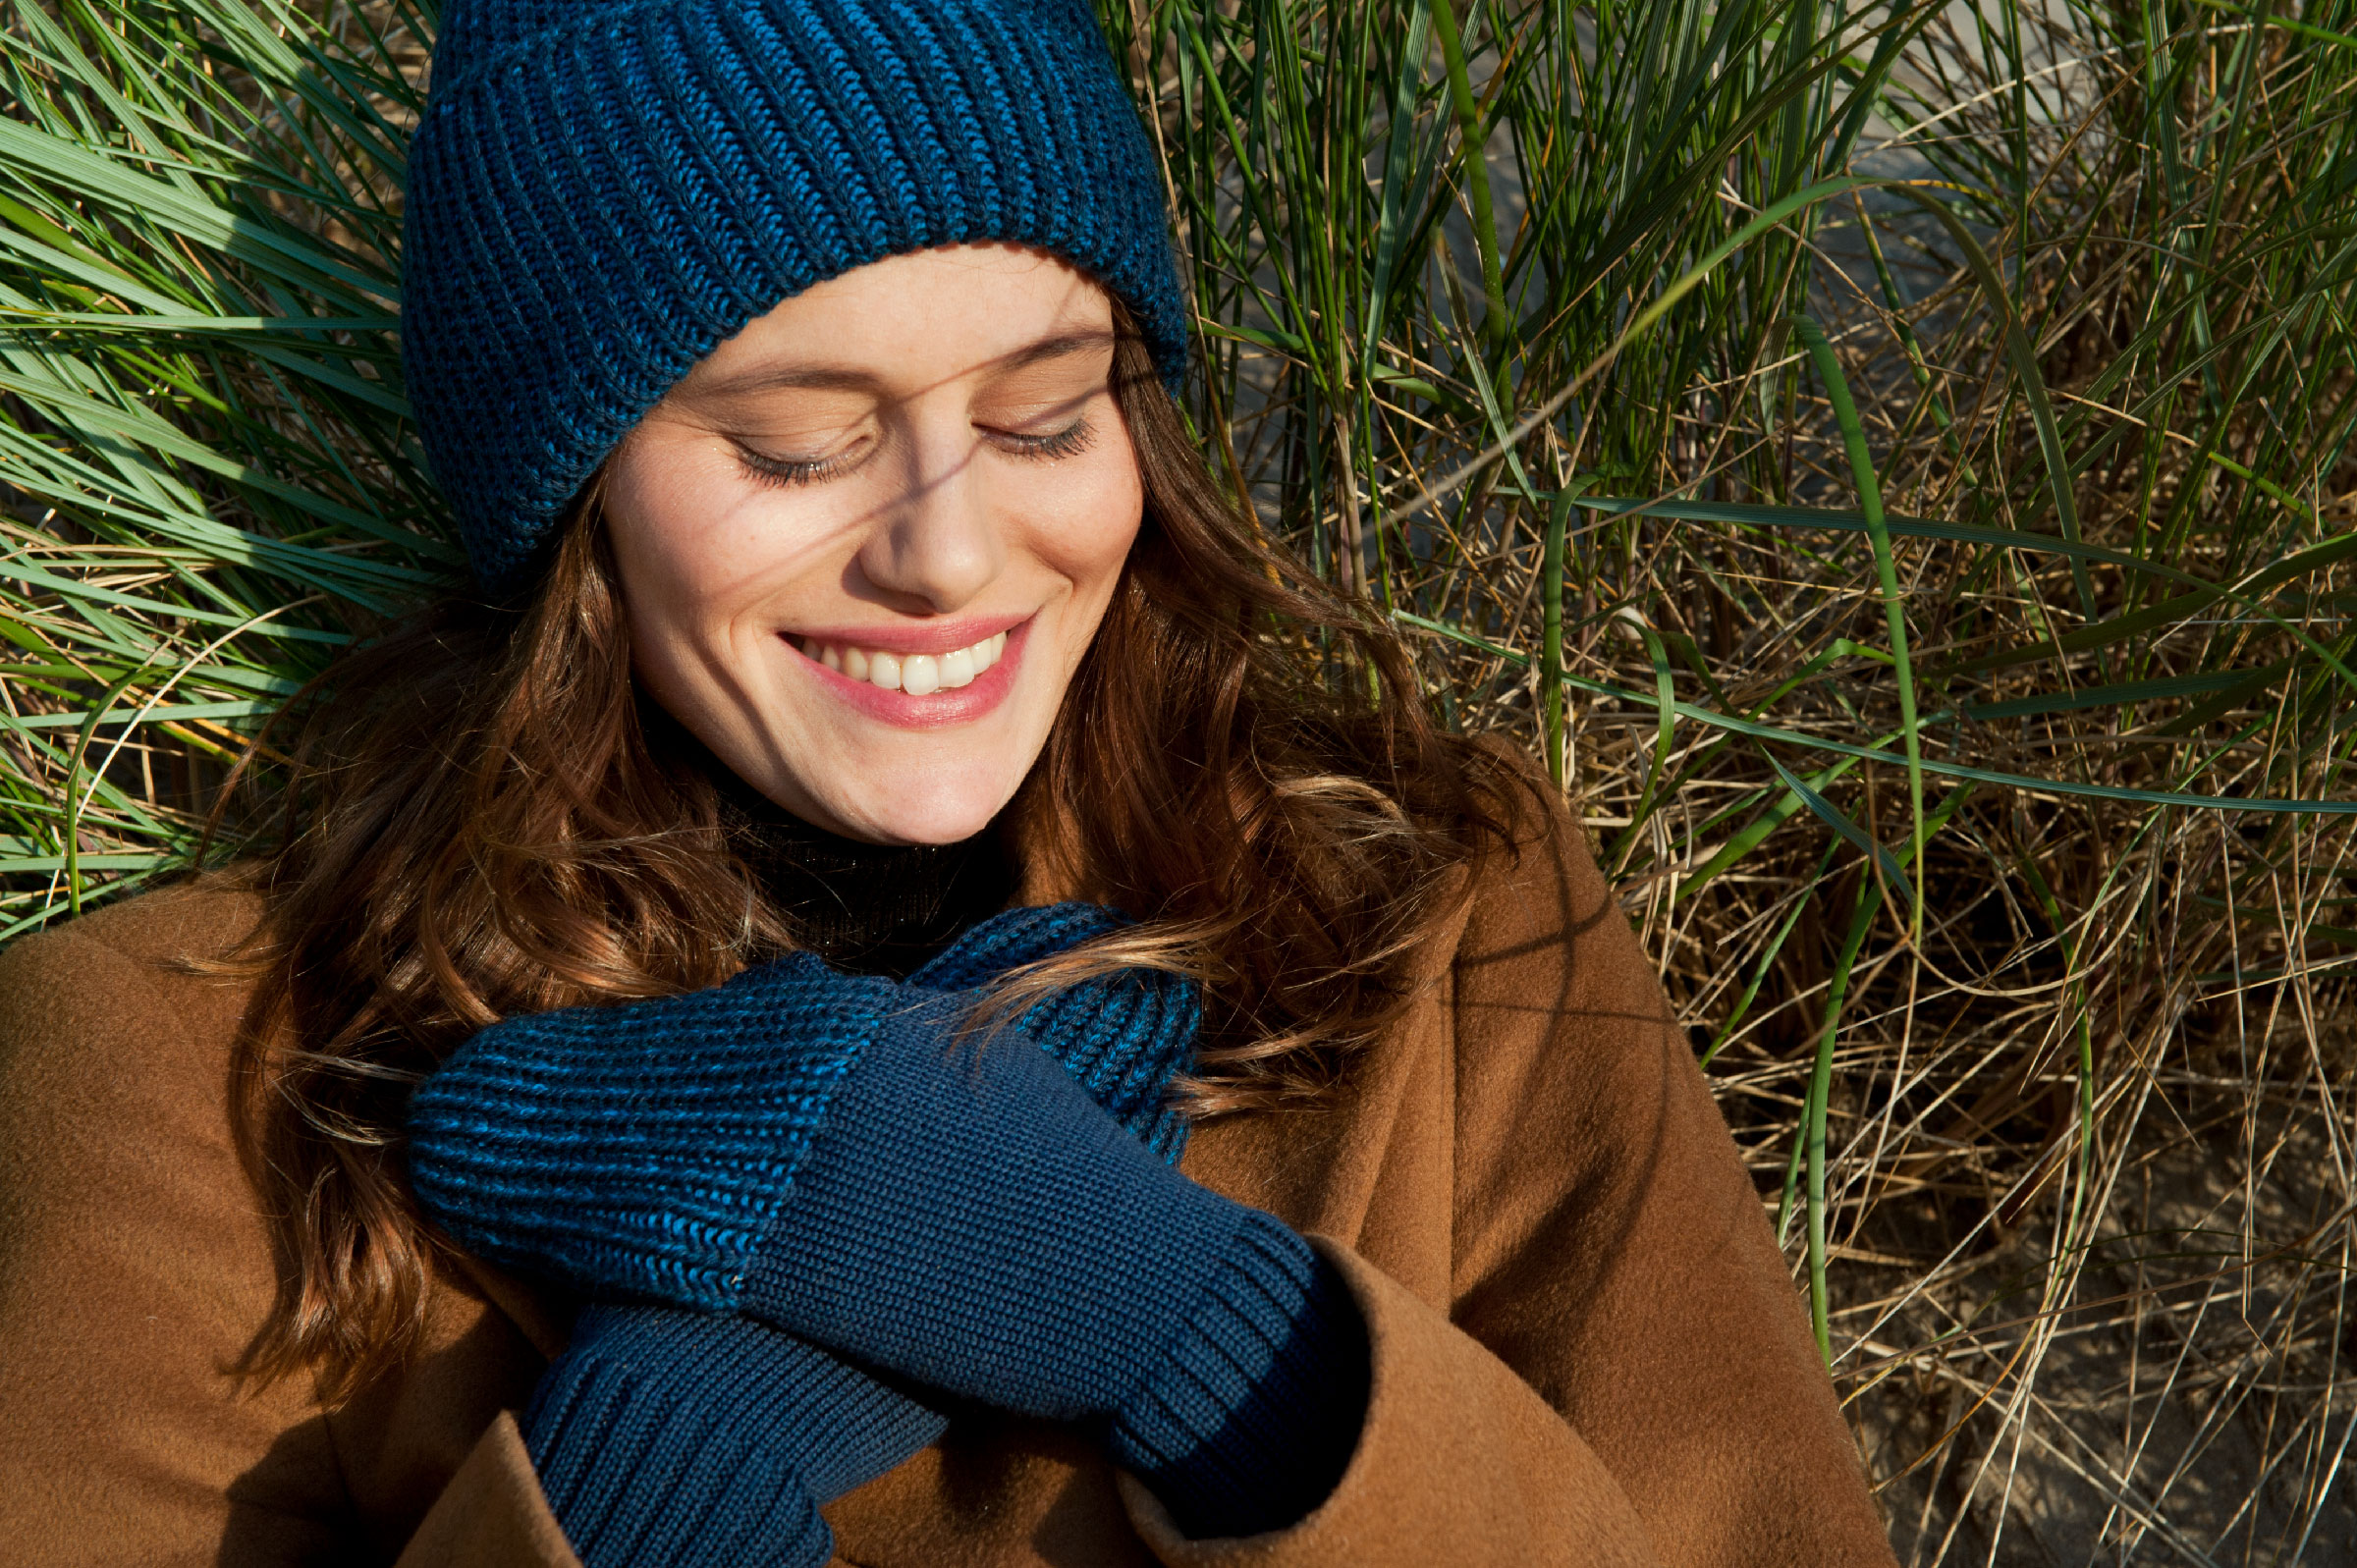 Reshaped beanie and mittens